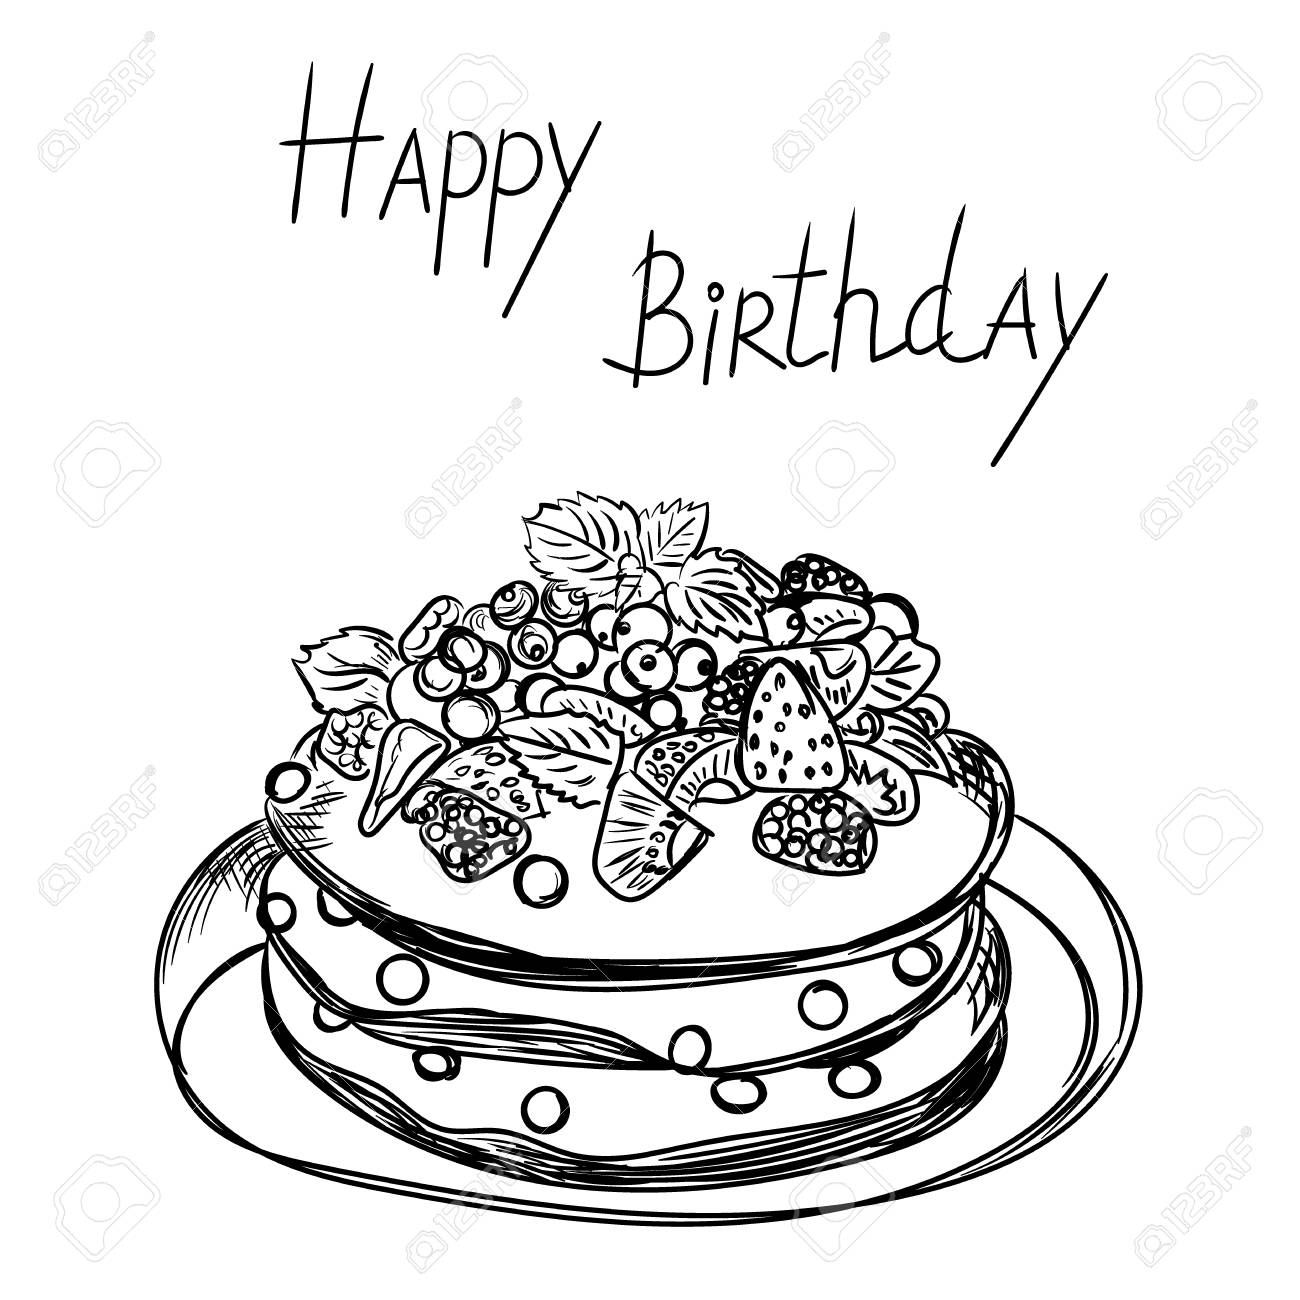 Birthday Cake In Sketch Style Royalty Free Cliparts Vectors And